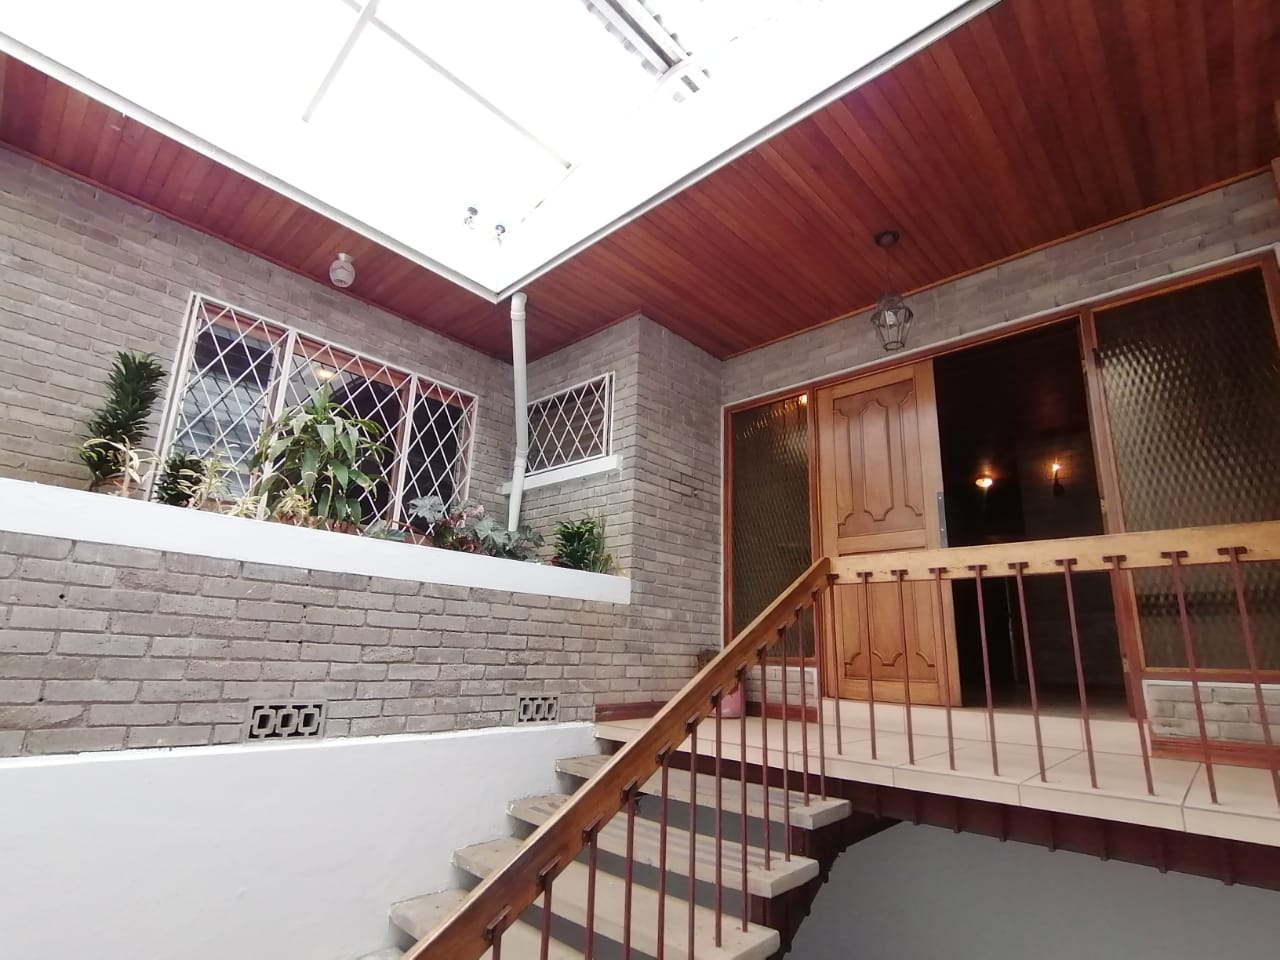 675 For Sale House in one story with mixed use, Curridabat